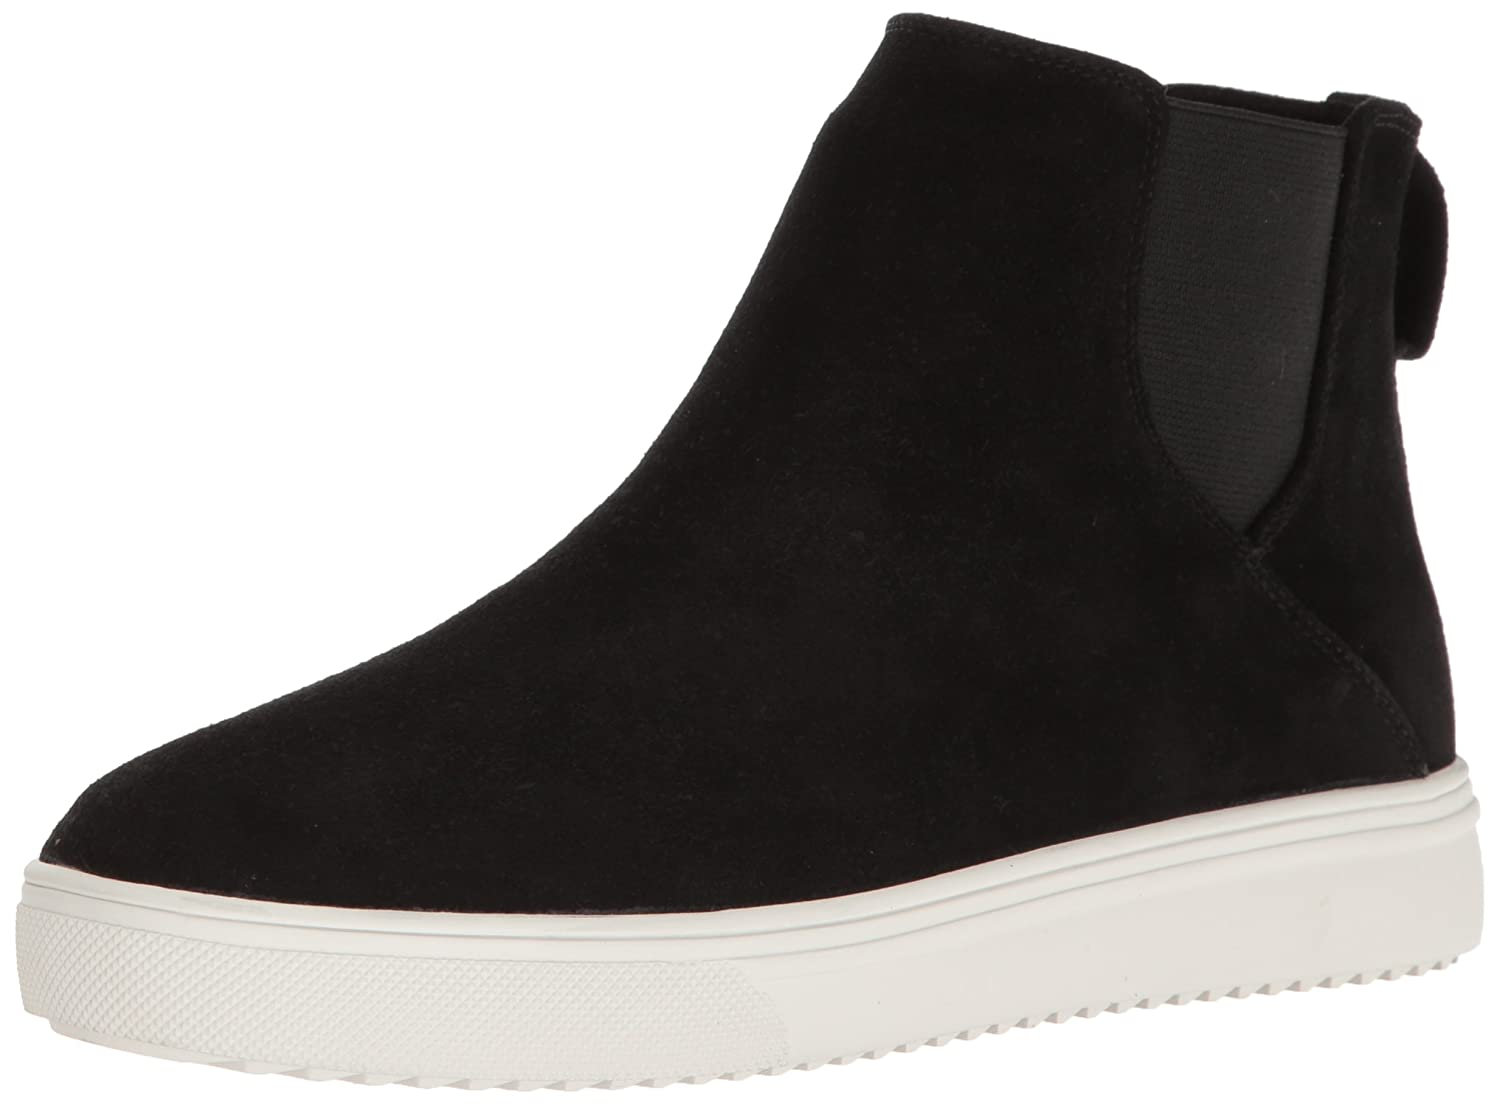 Blondo Women's Baxton Waterproof Fashion Sneaker B01N2MAUOO 7 B(M) US|Black Suede